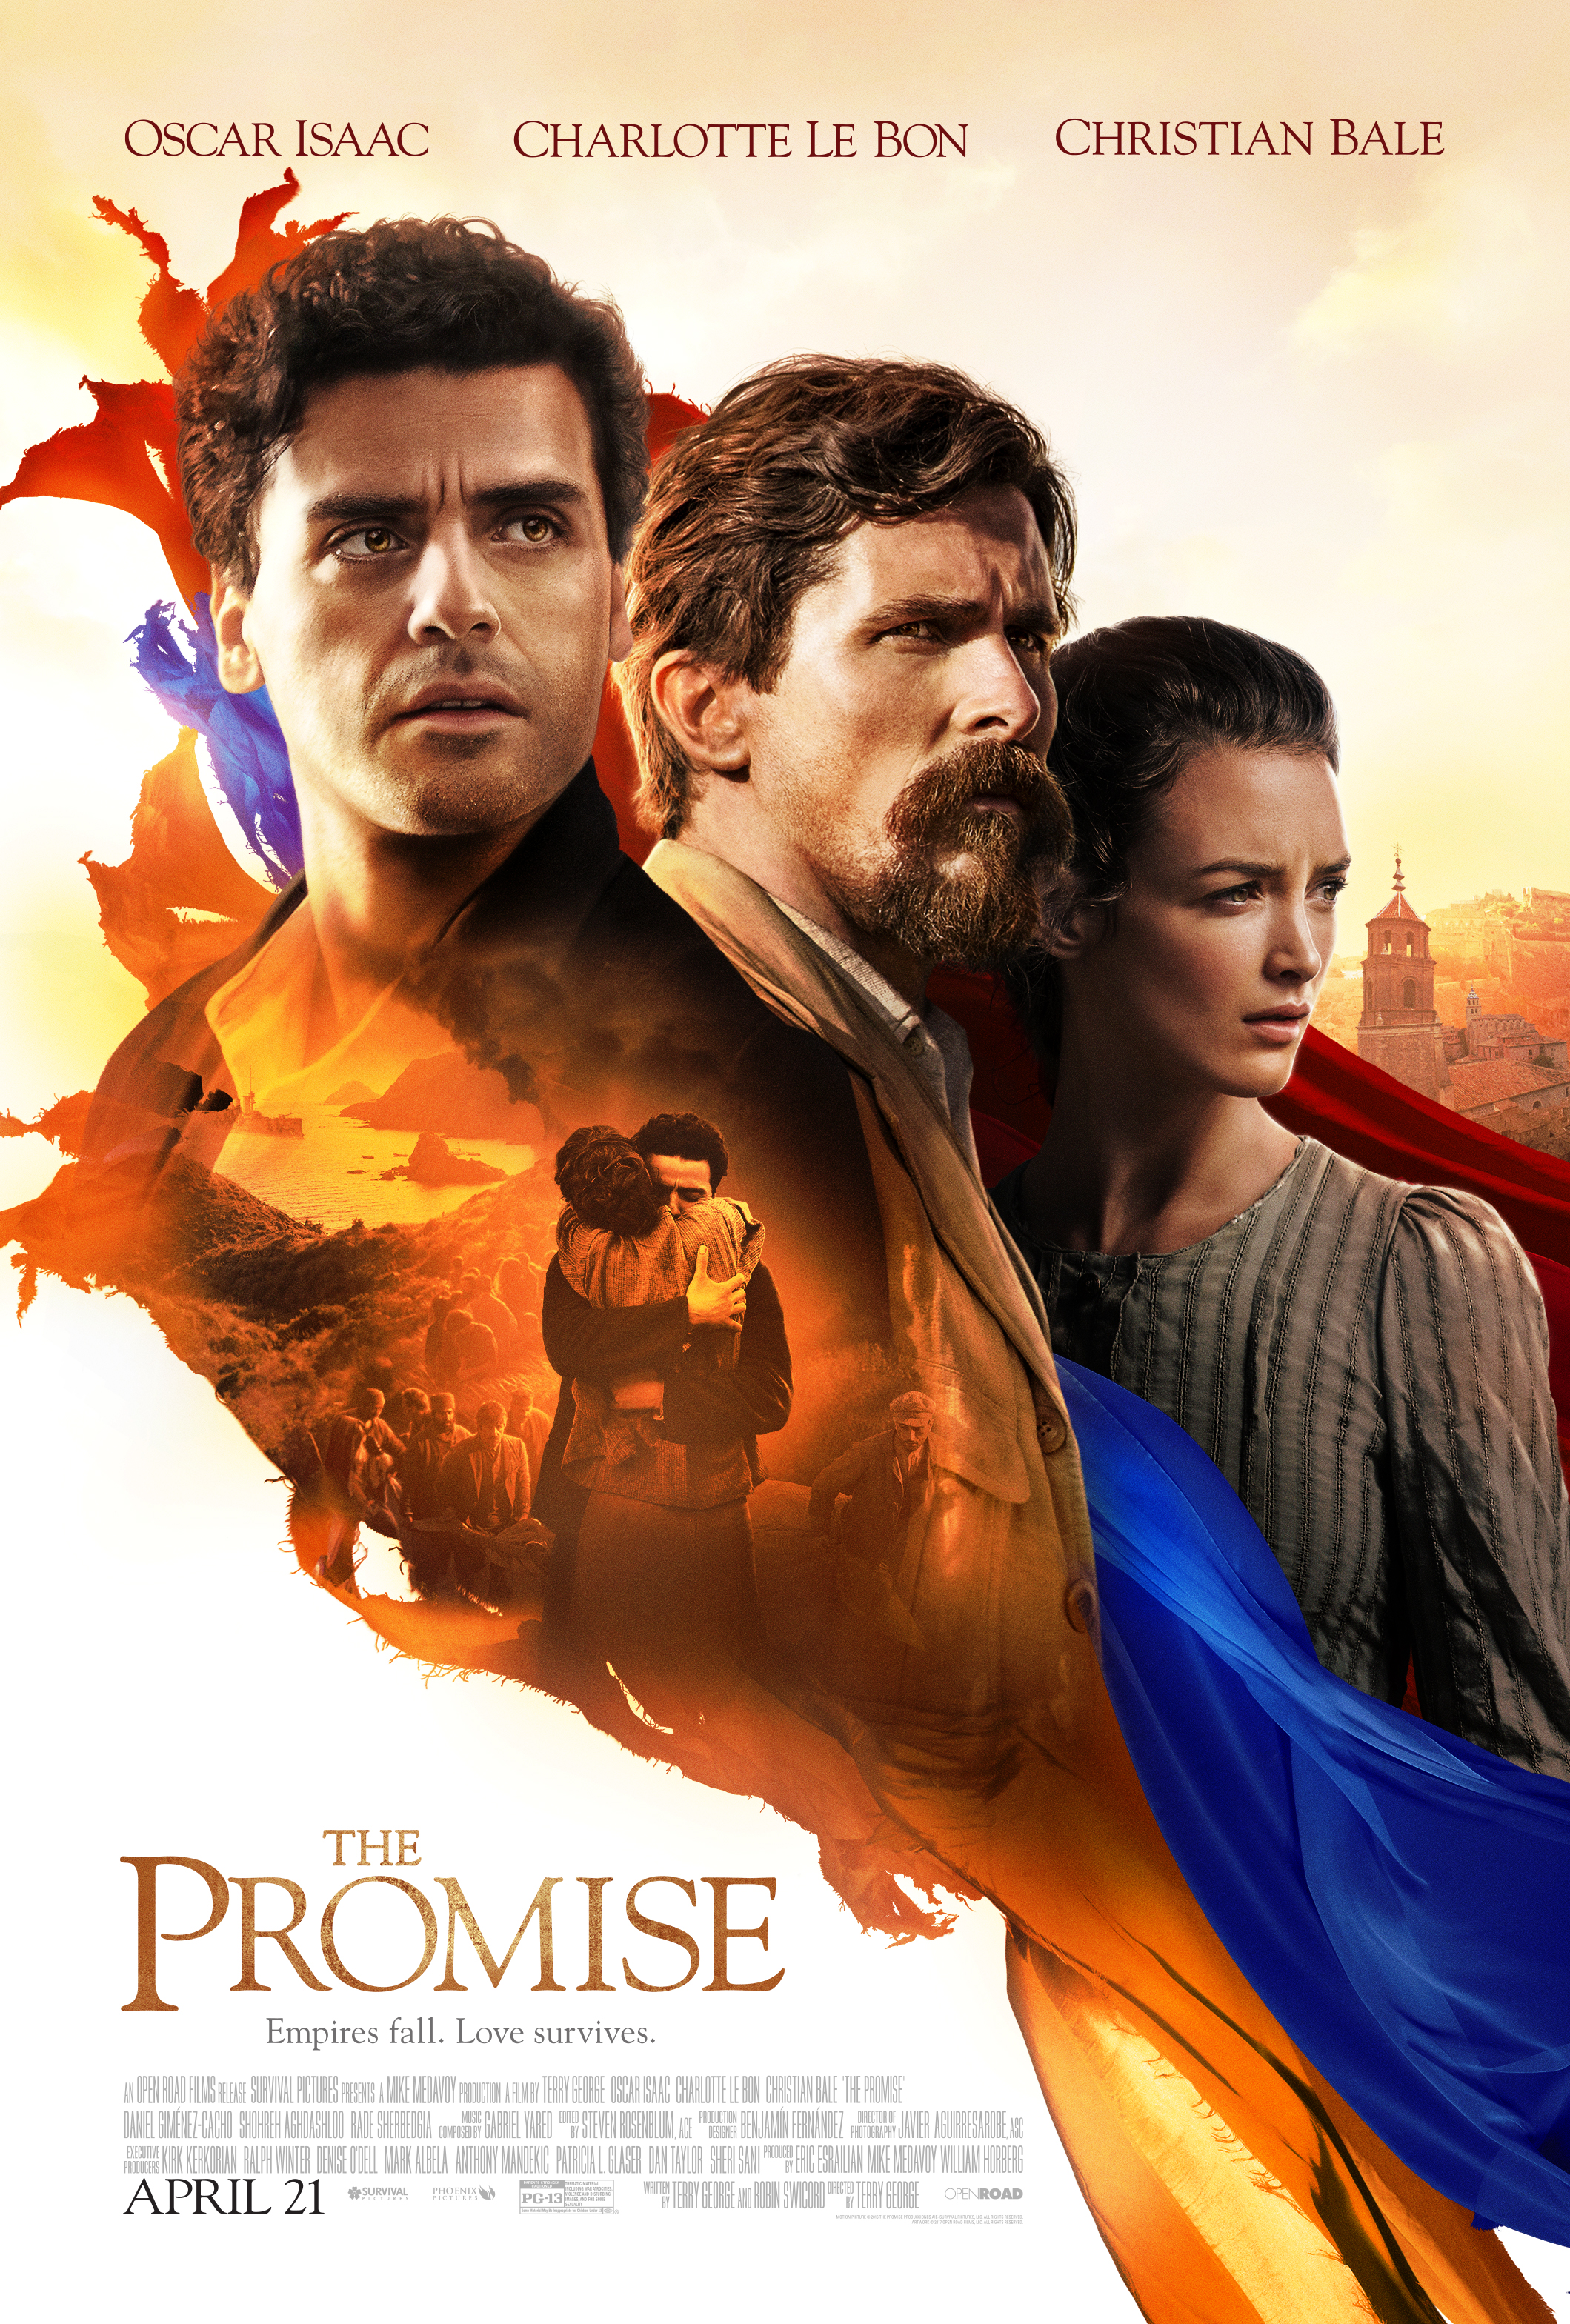 The Promise film poster